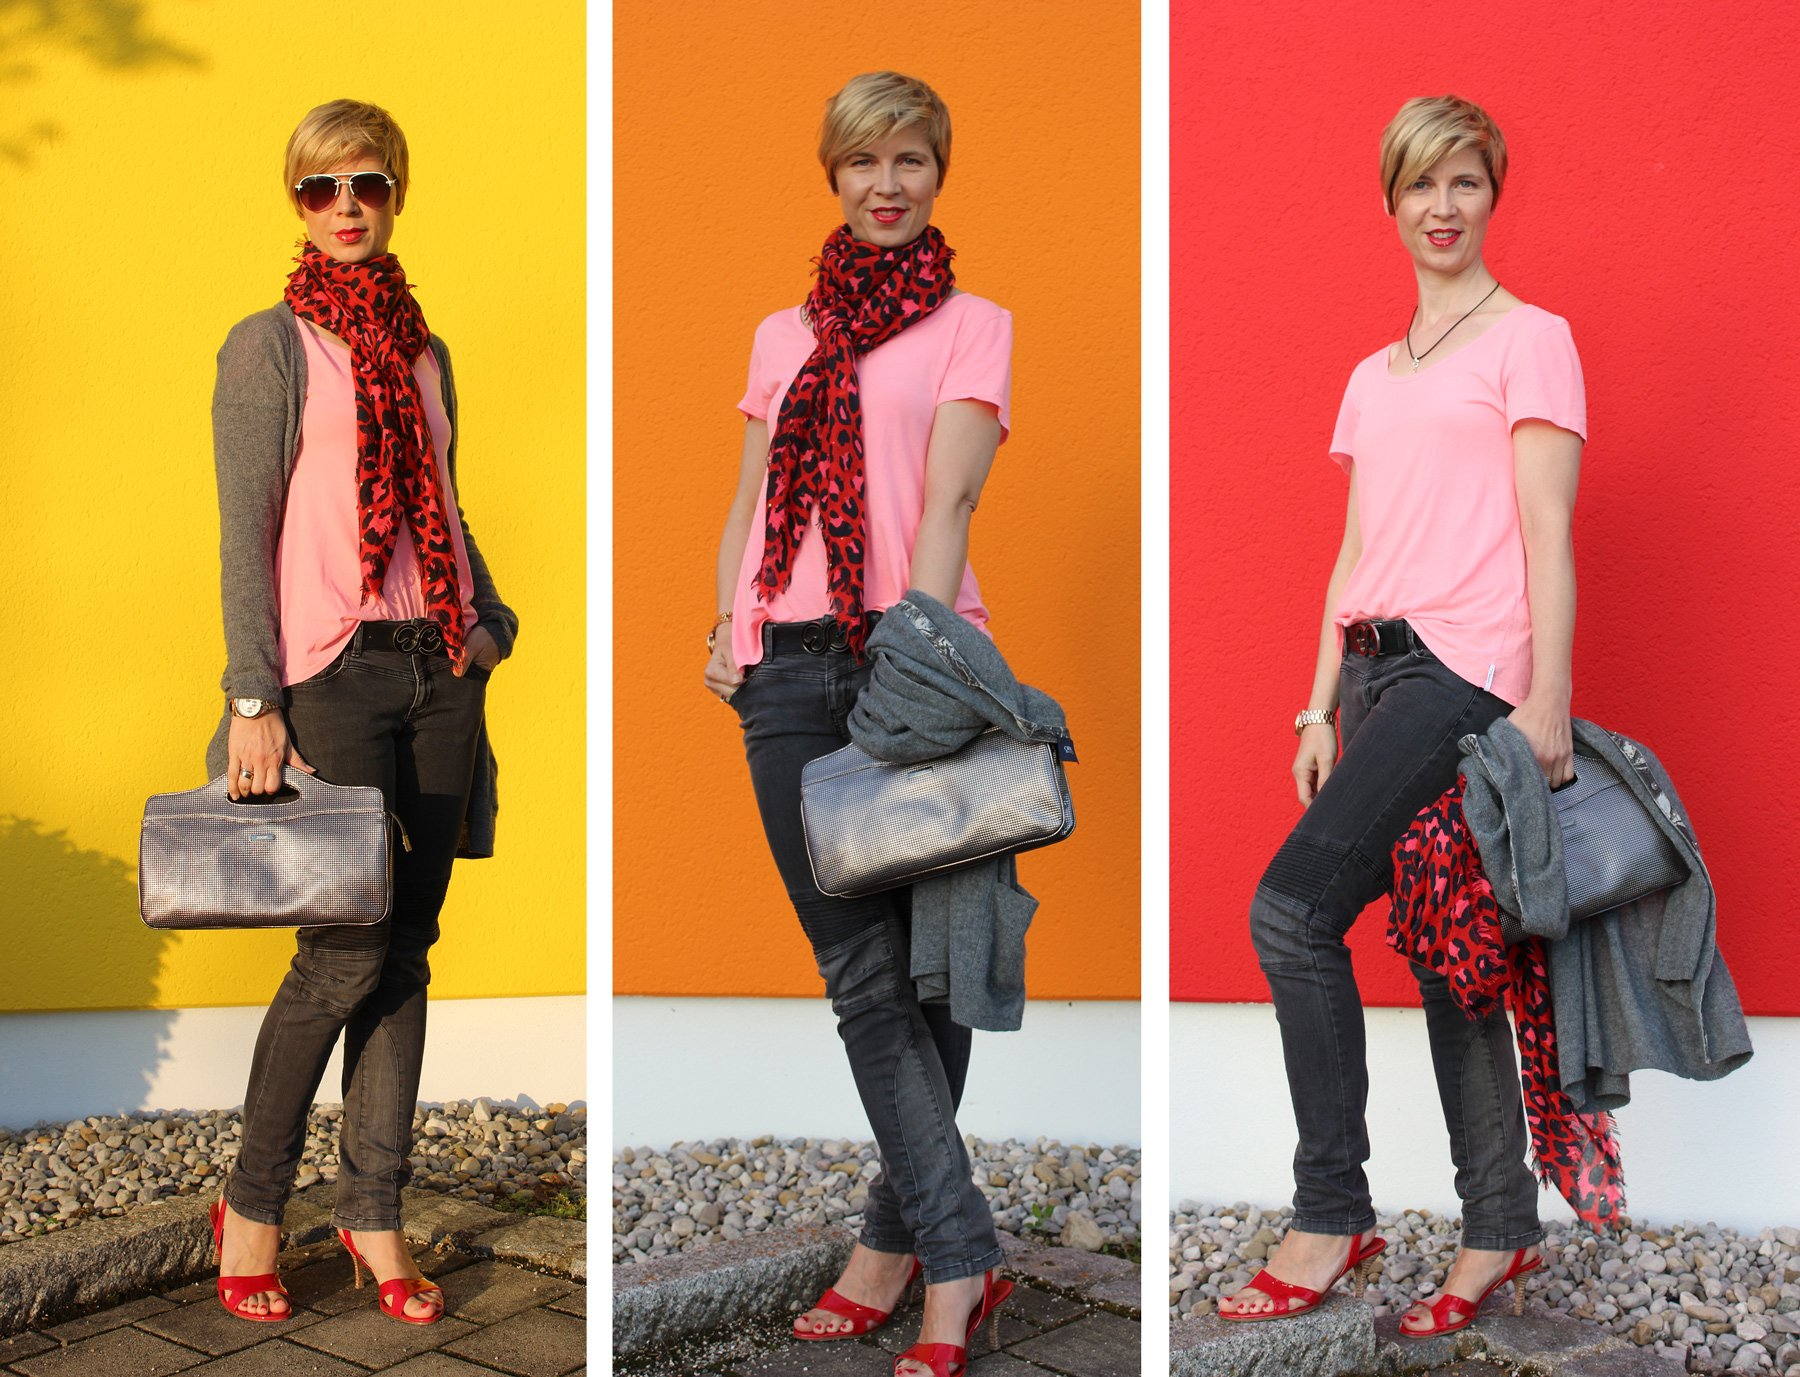 Collage_OnlyJeans_OrwellCardigan_81hoursShirt_JetteJoopSandals_scarfHM,JoopBag_Collage